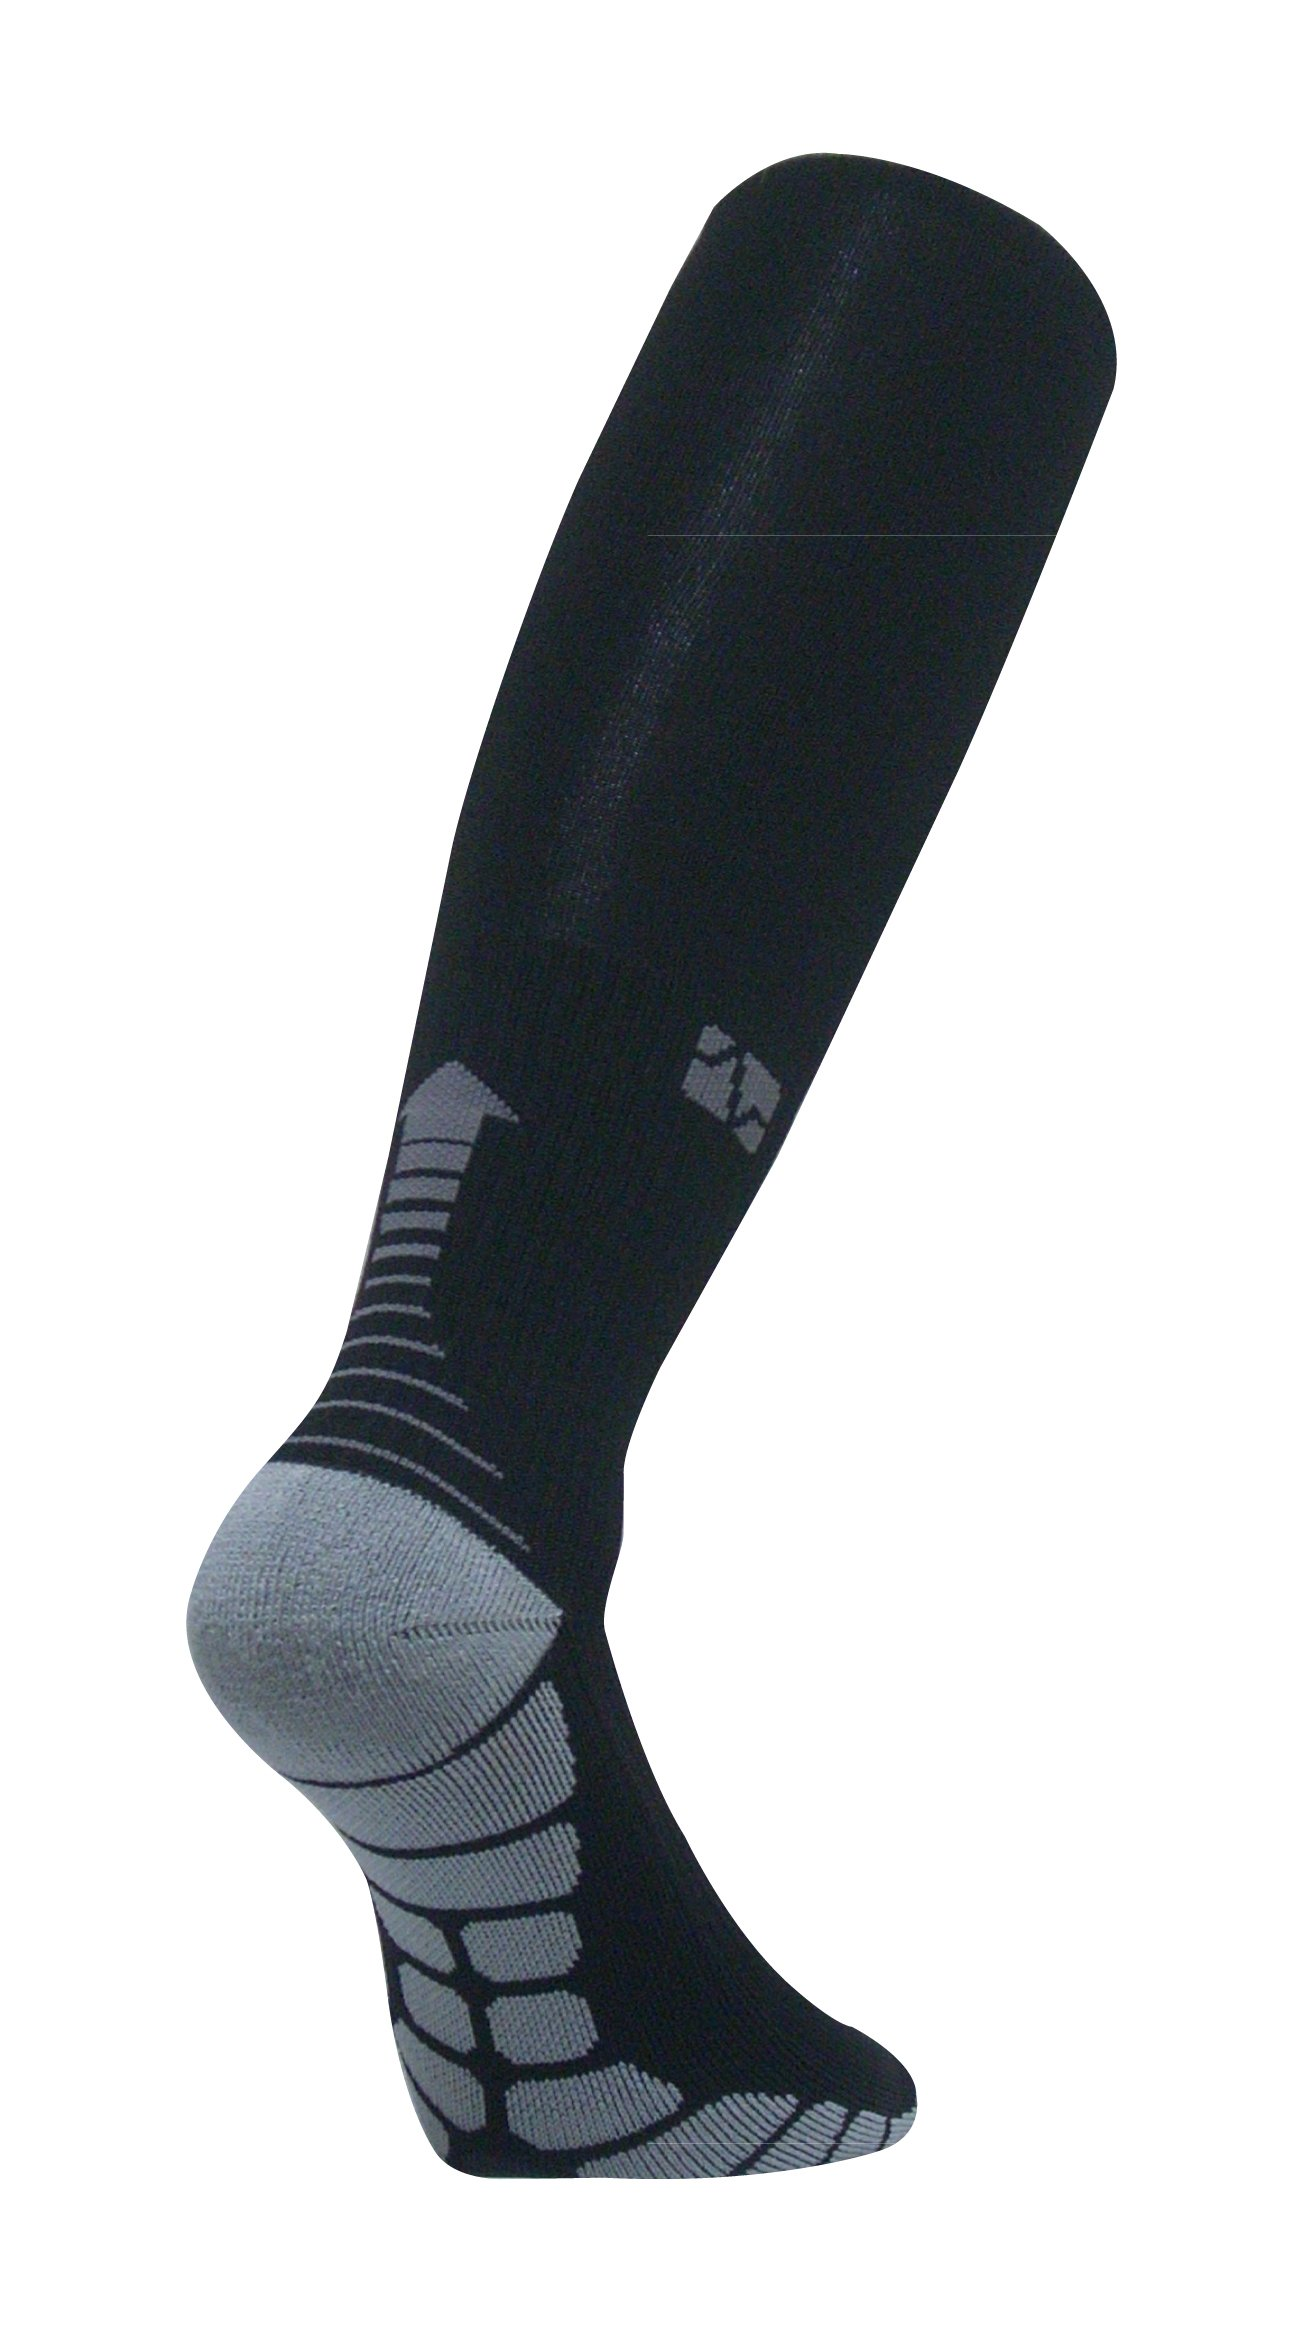 Vitalsox Italy-Patented Compression VT1211,Small,Black by Vitalsox (Image #2)